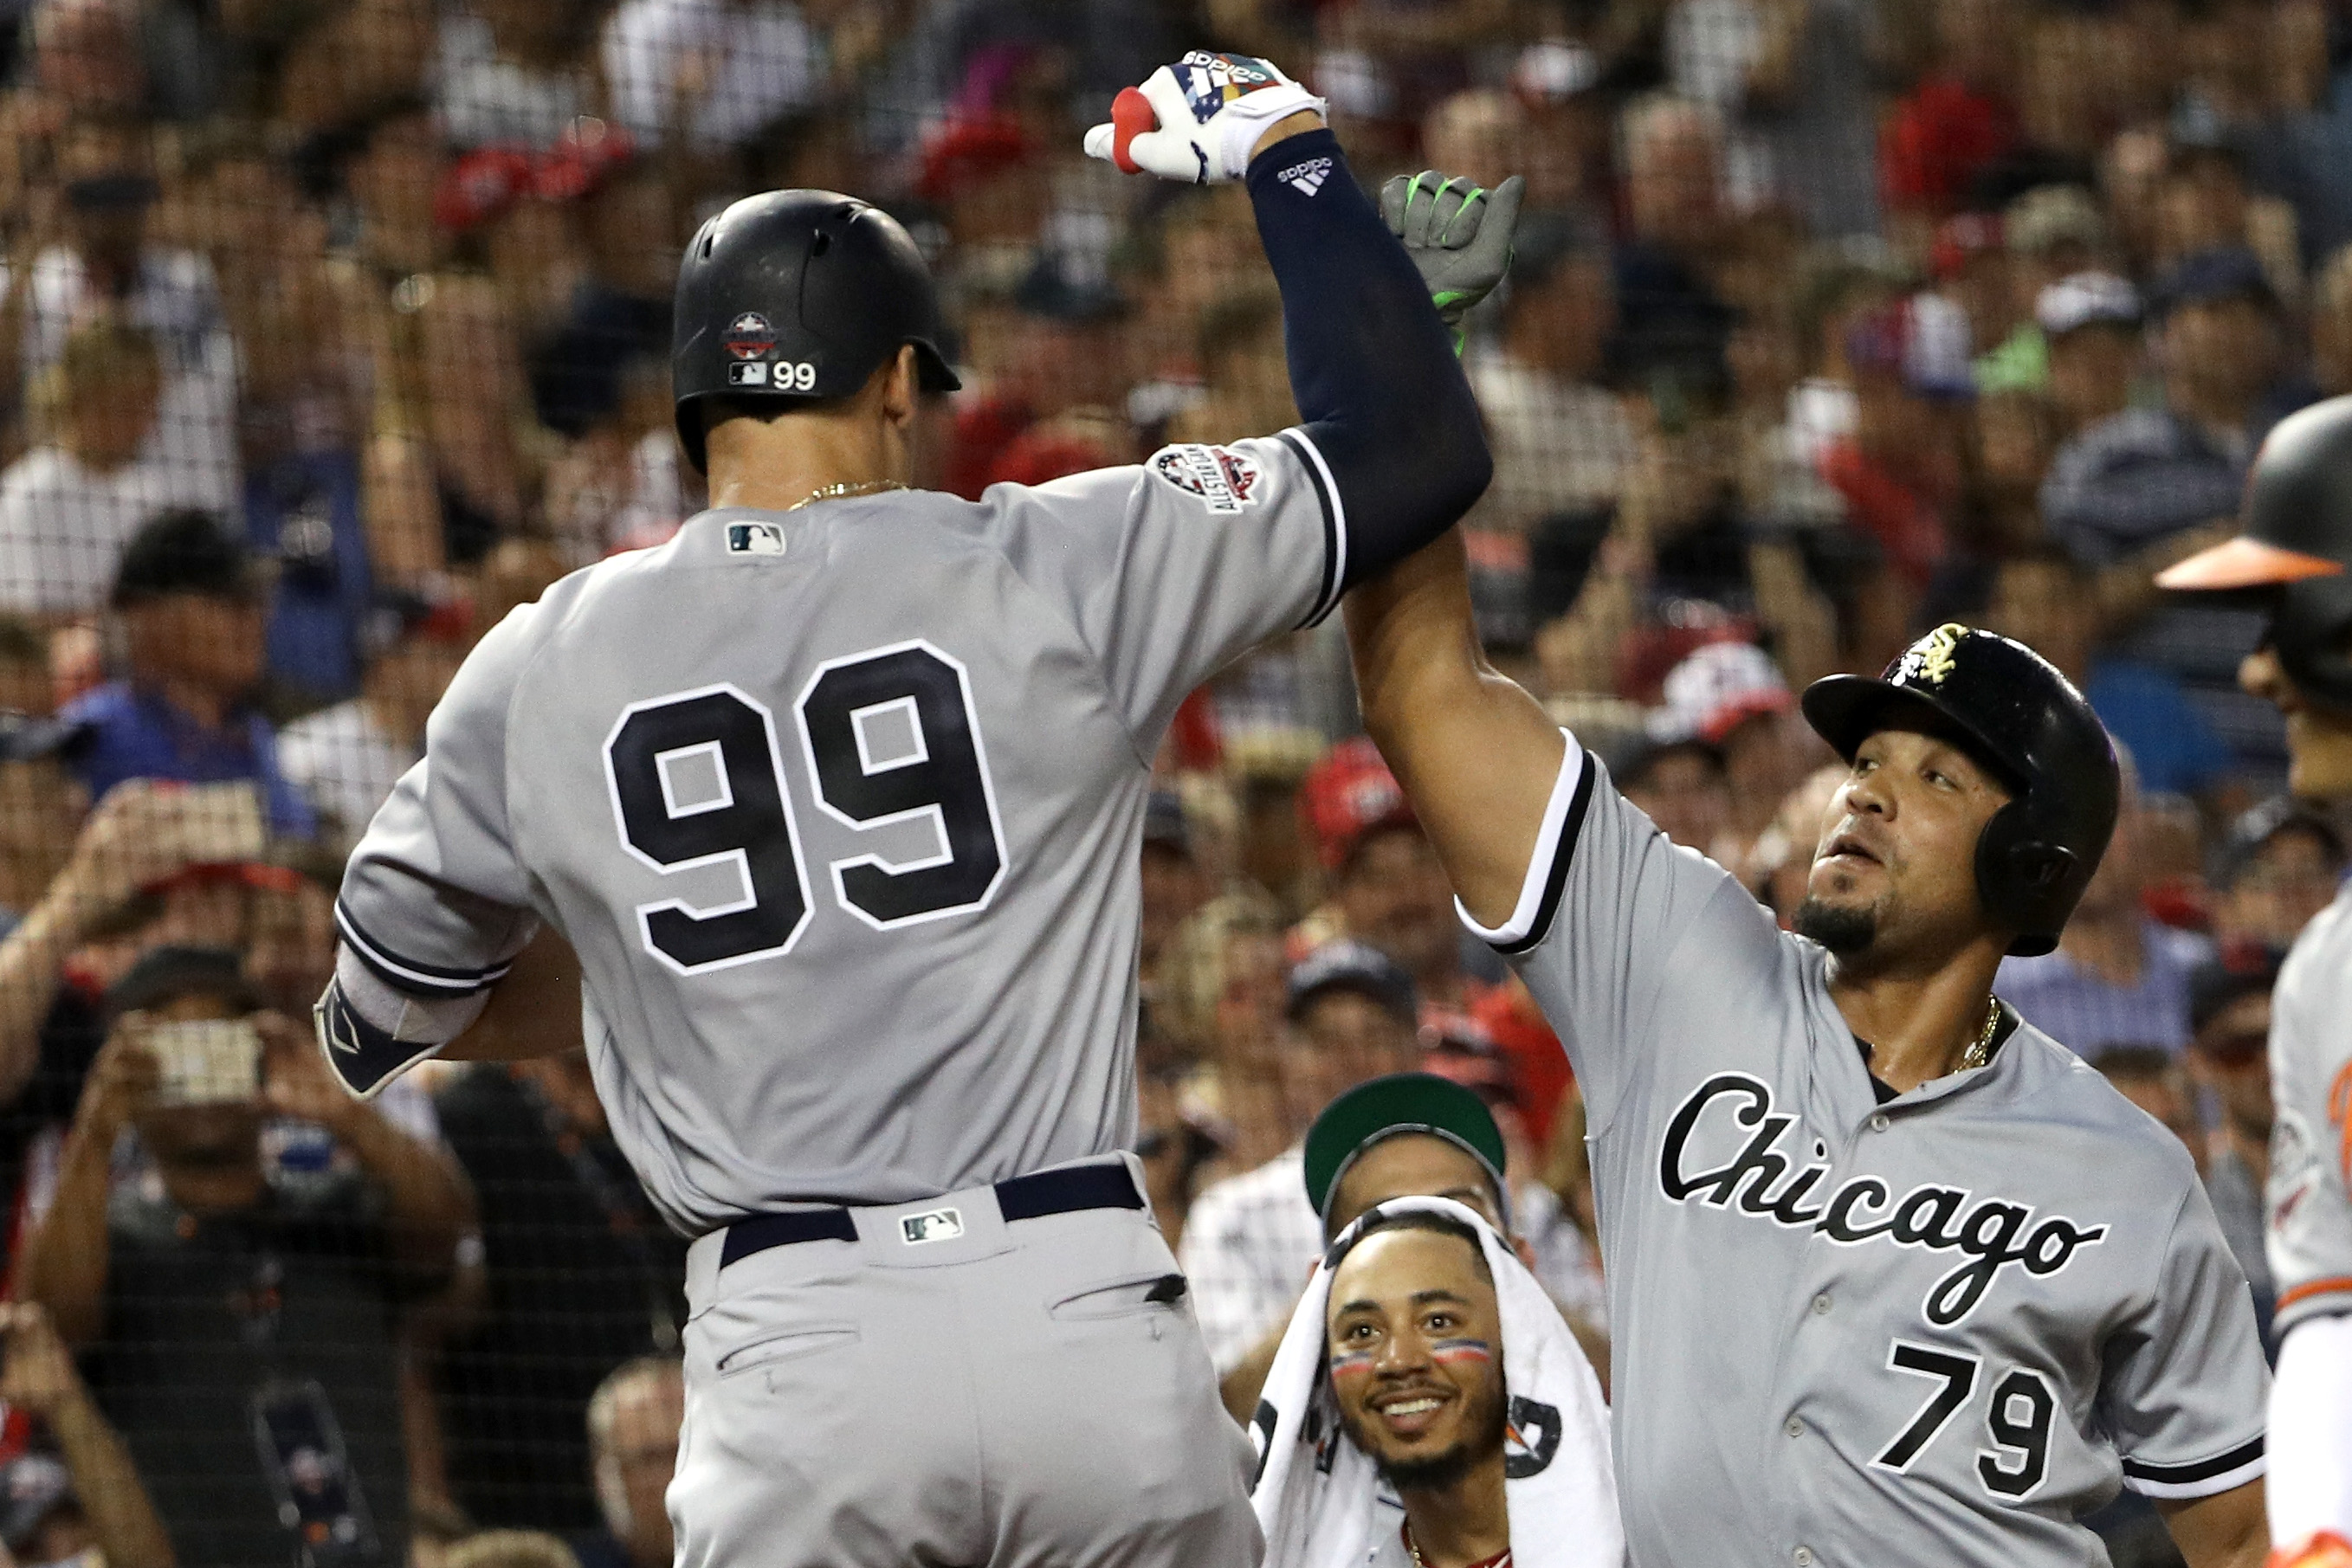 89th MLB All-Star Game, presented by Mastercard